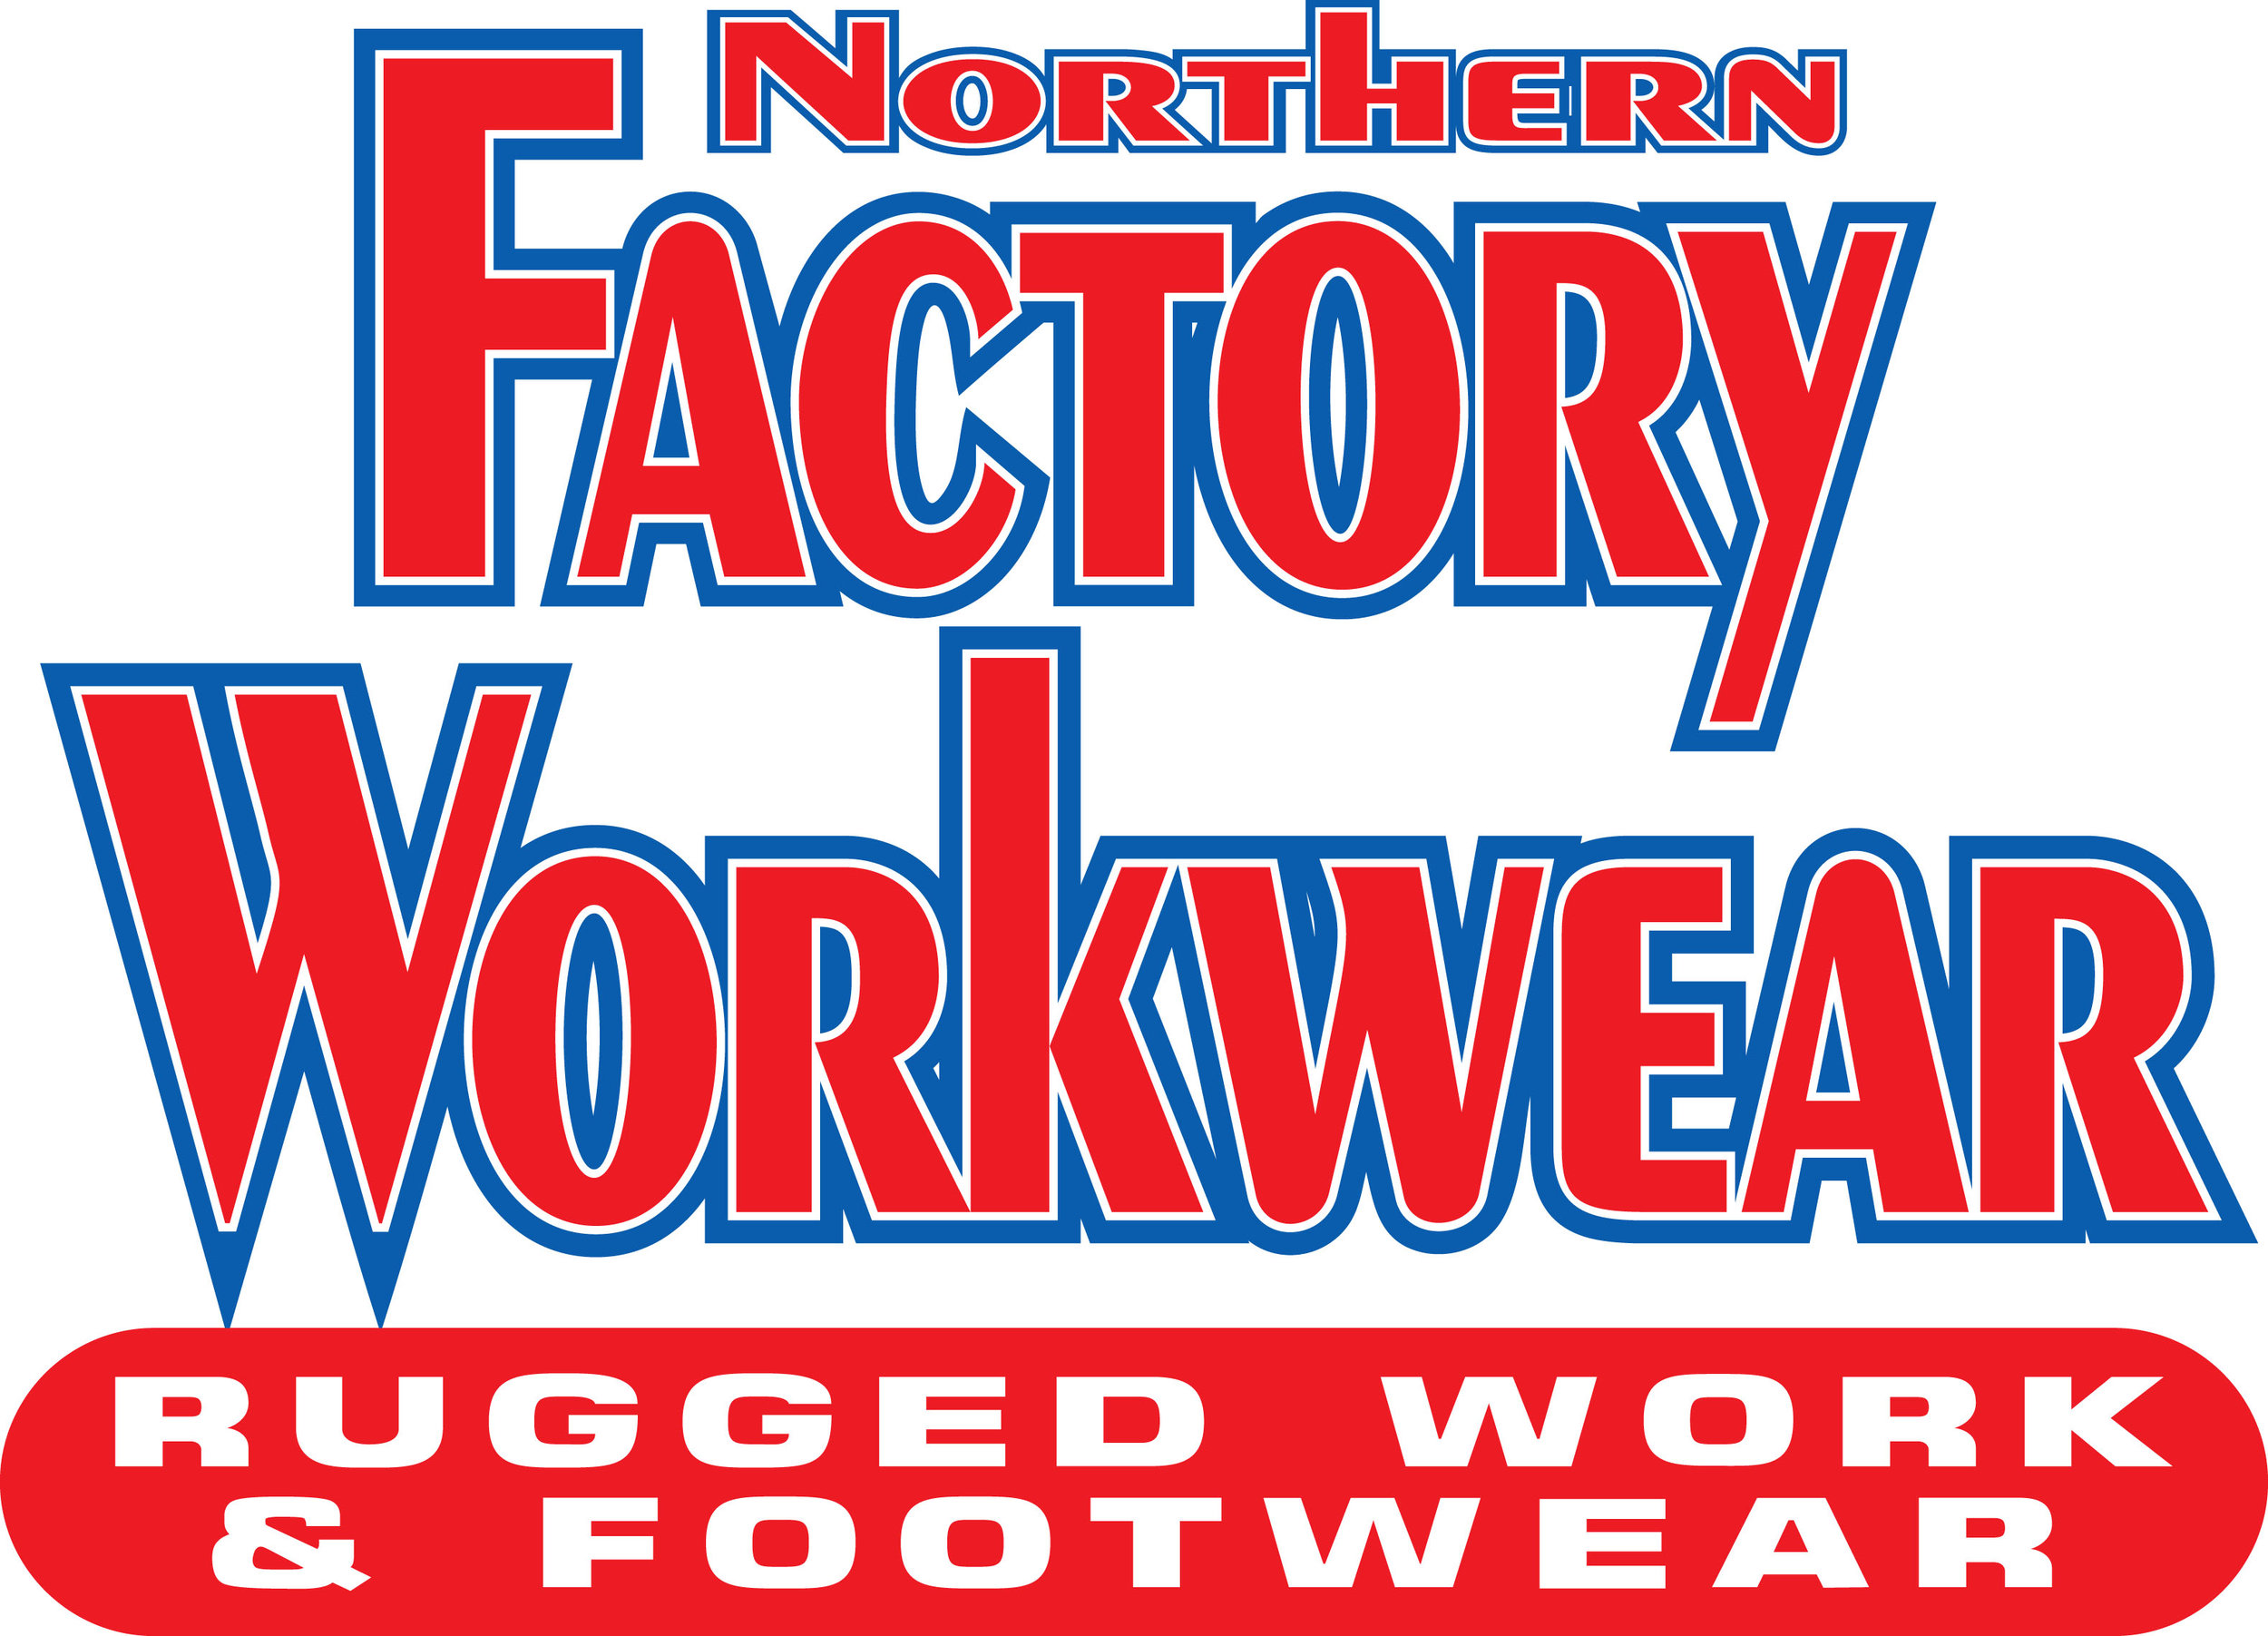 northern factory workwear 2013.jpg